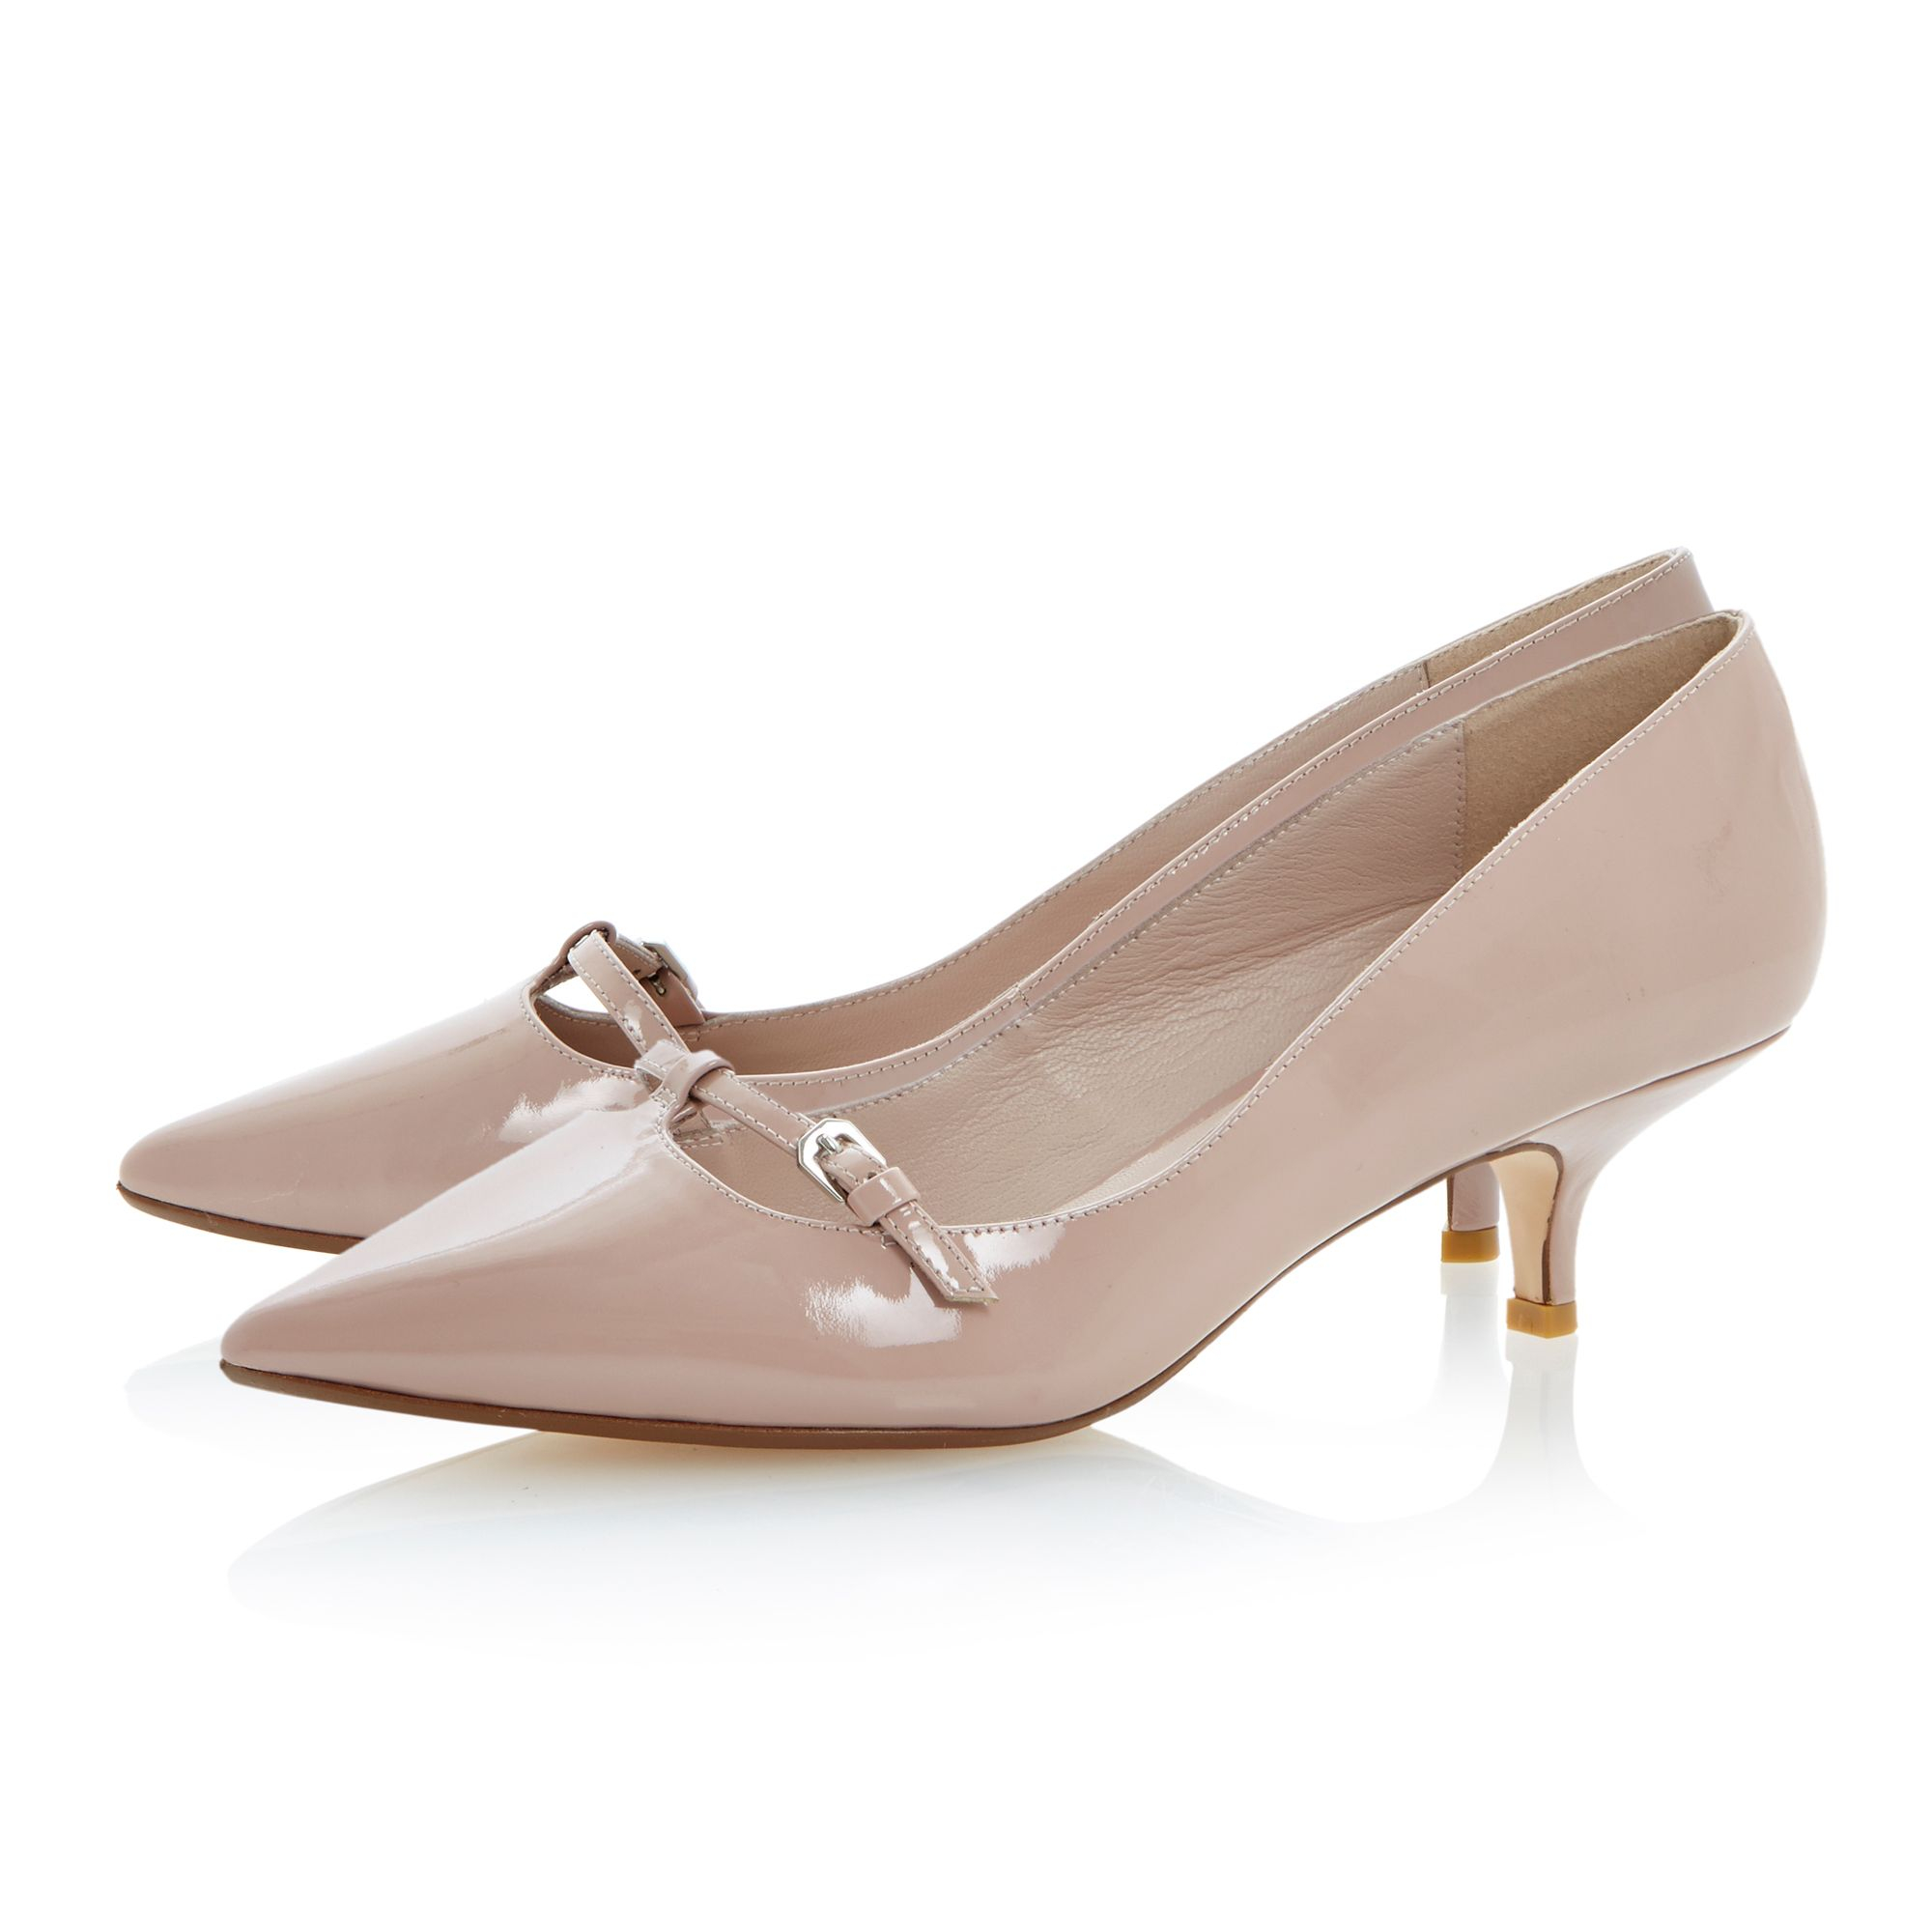 Lyst - Dune Alyce Patent Pointed Toe Kitten Heel Shoes in Pink